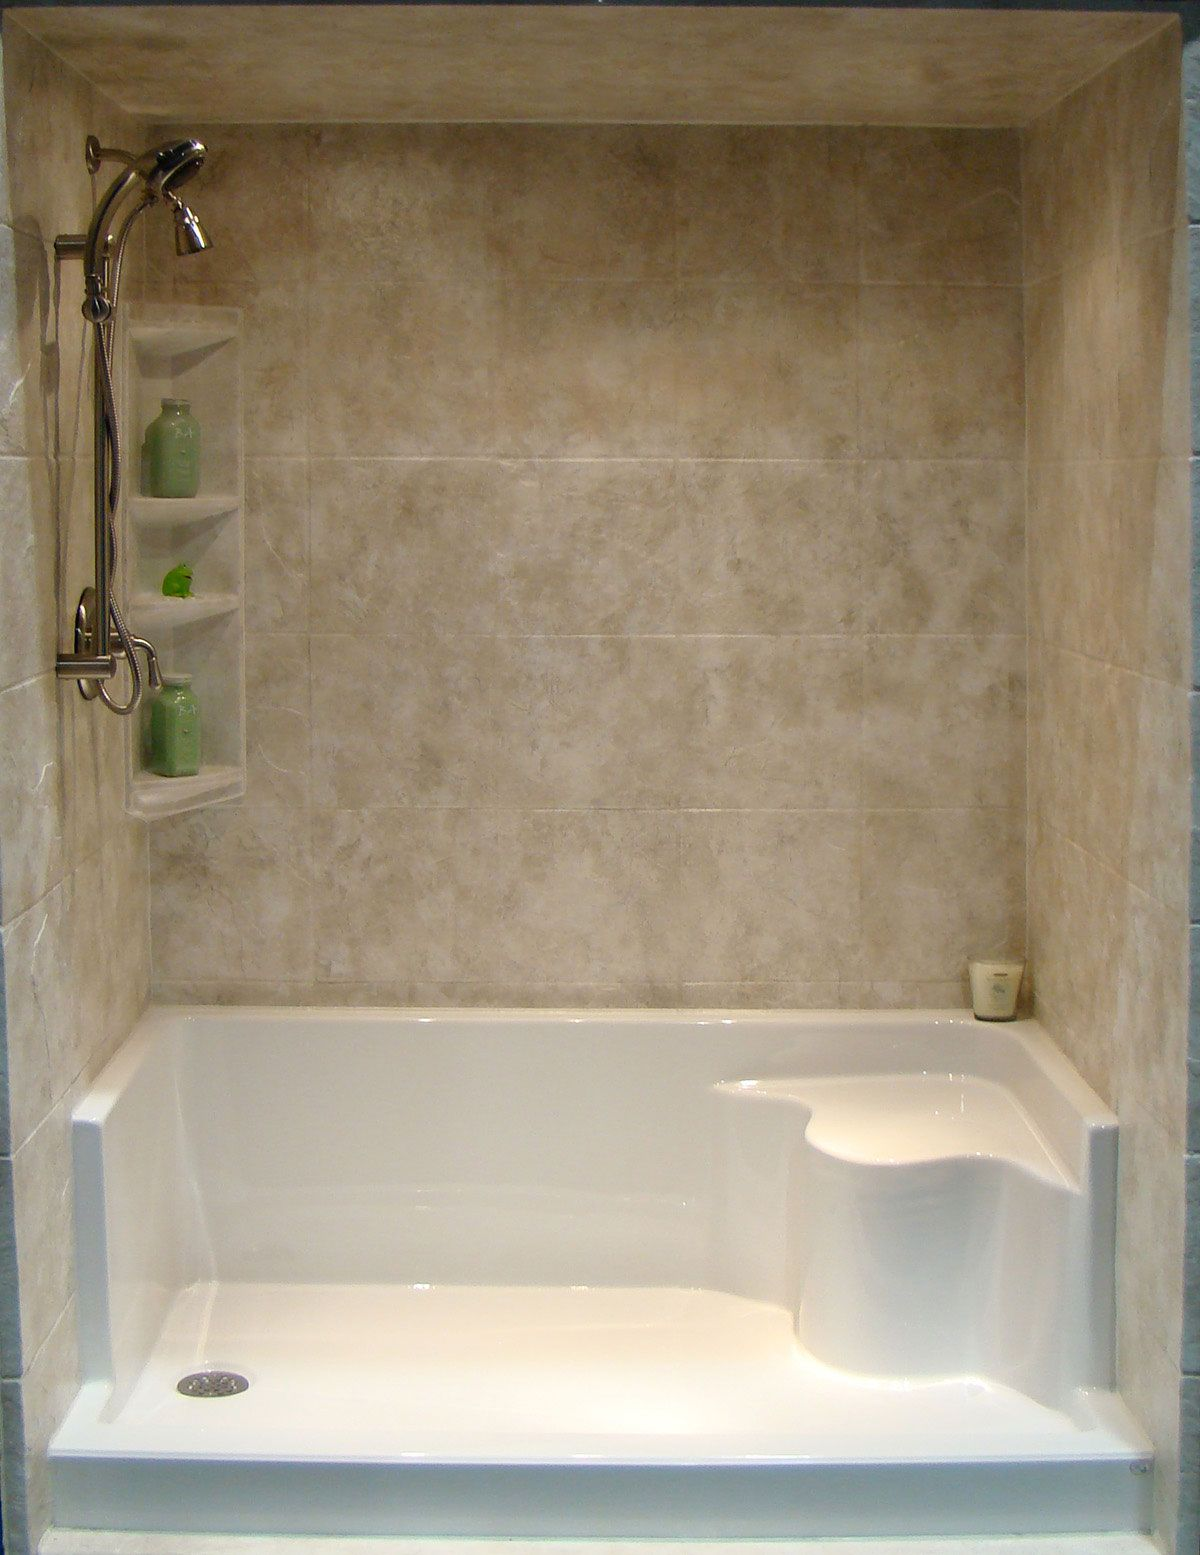 Tub An Shower Conversion Ideas Bathtub Refinishing